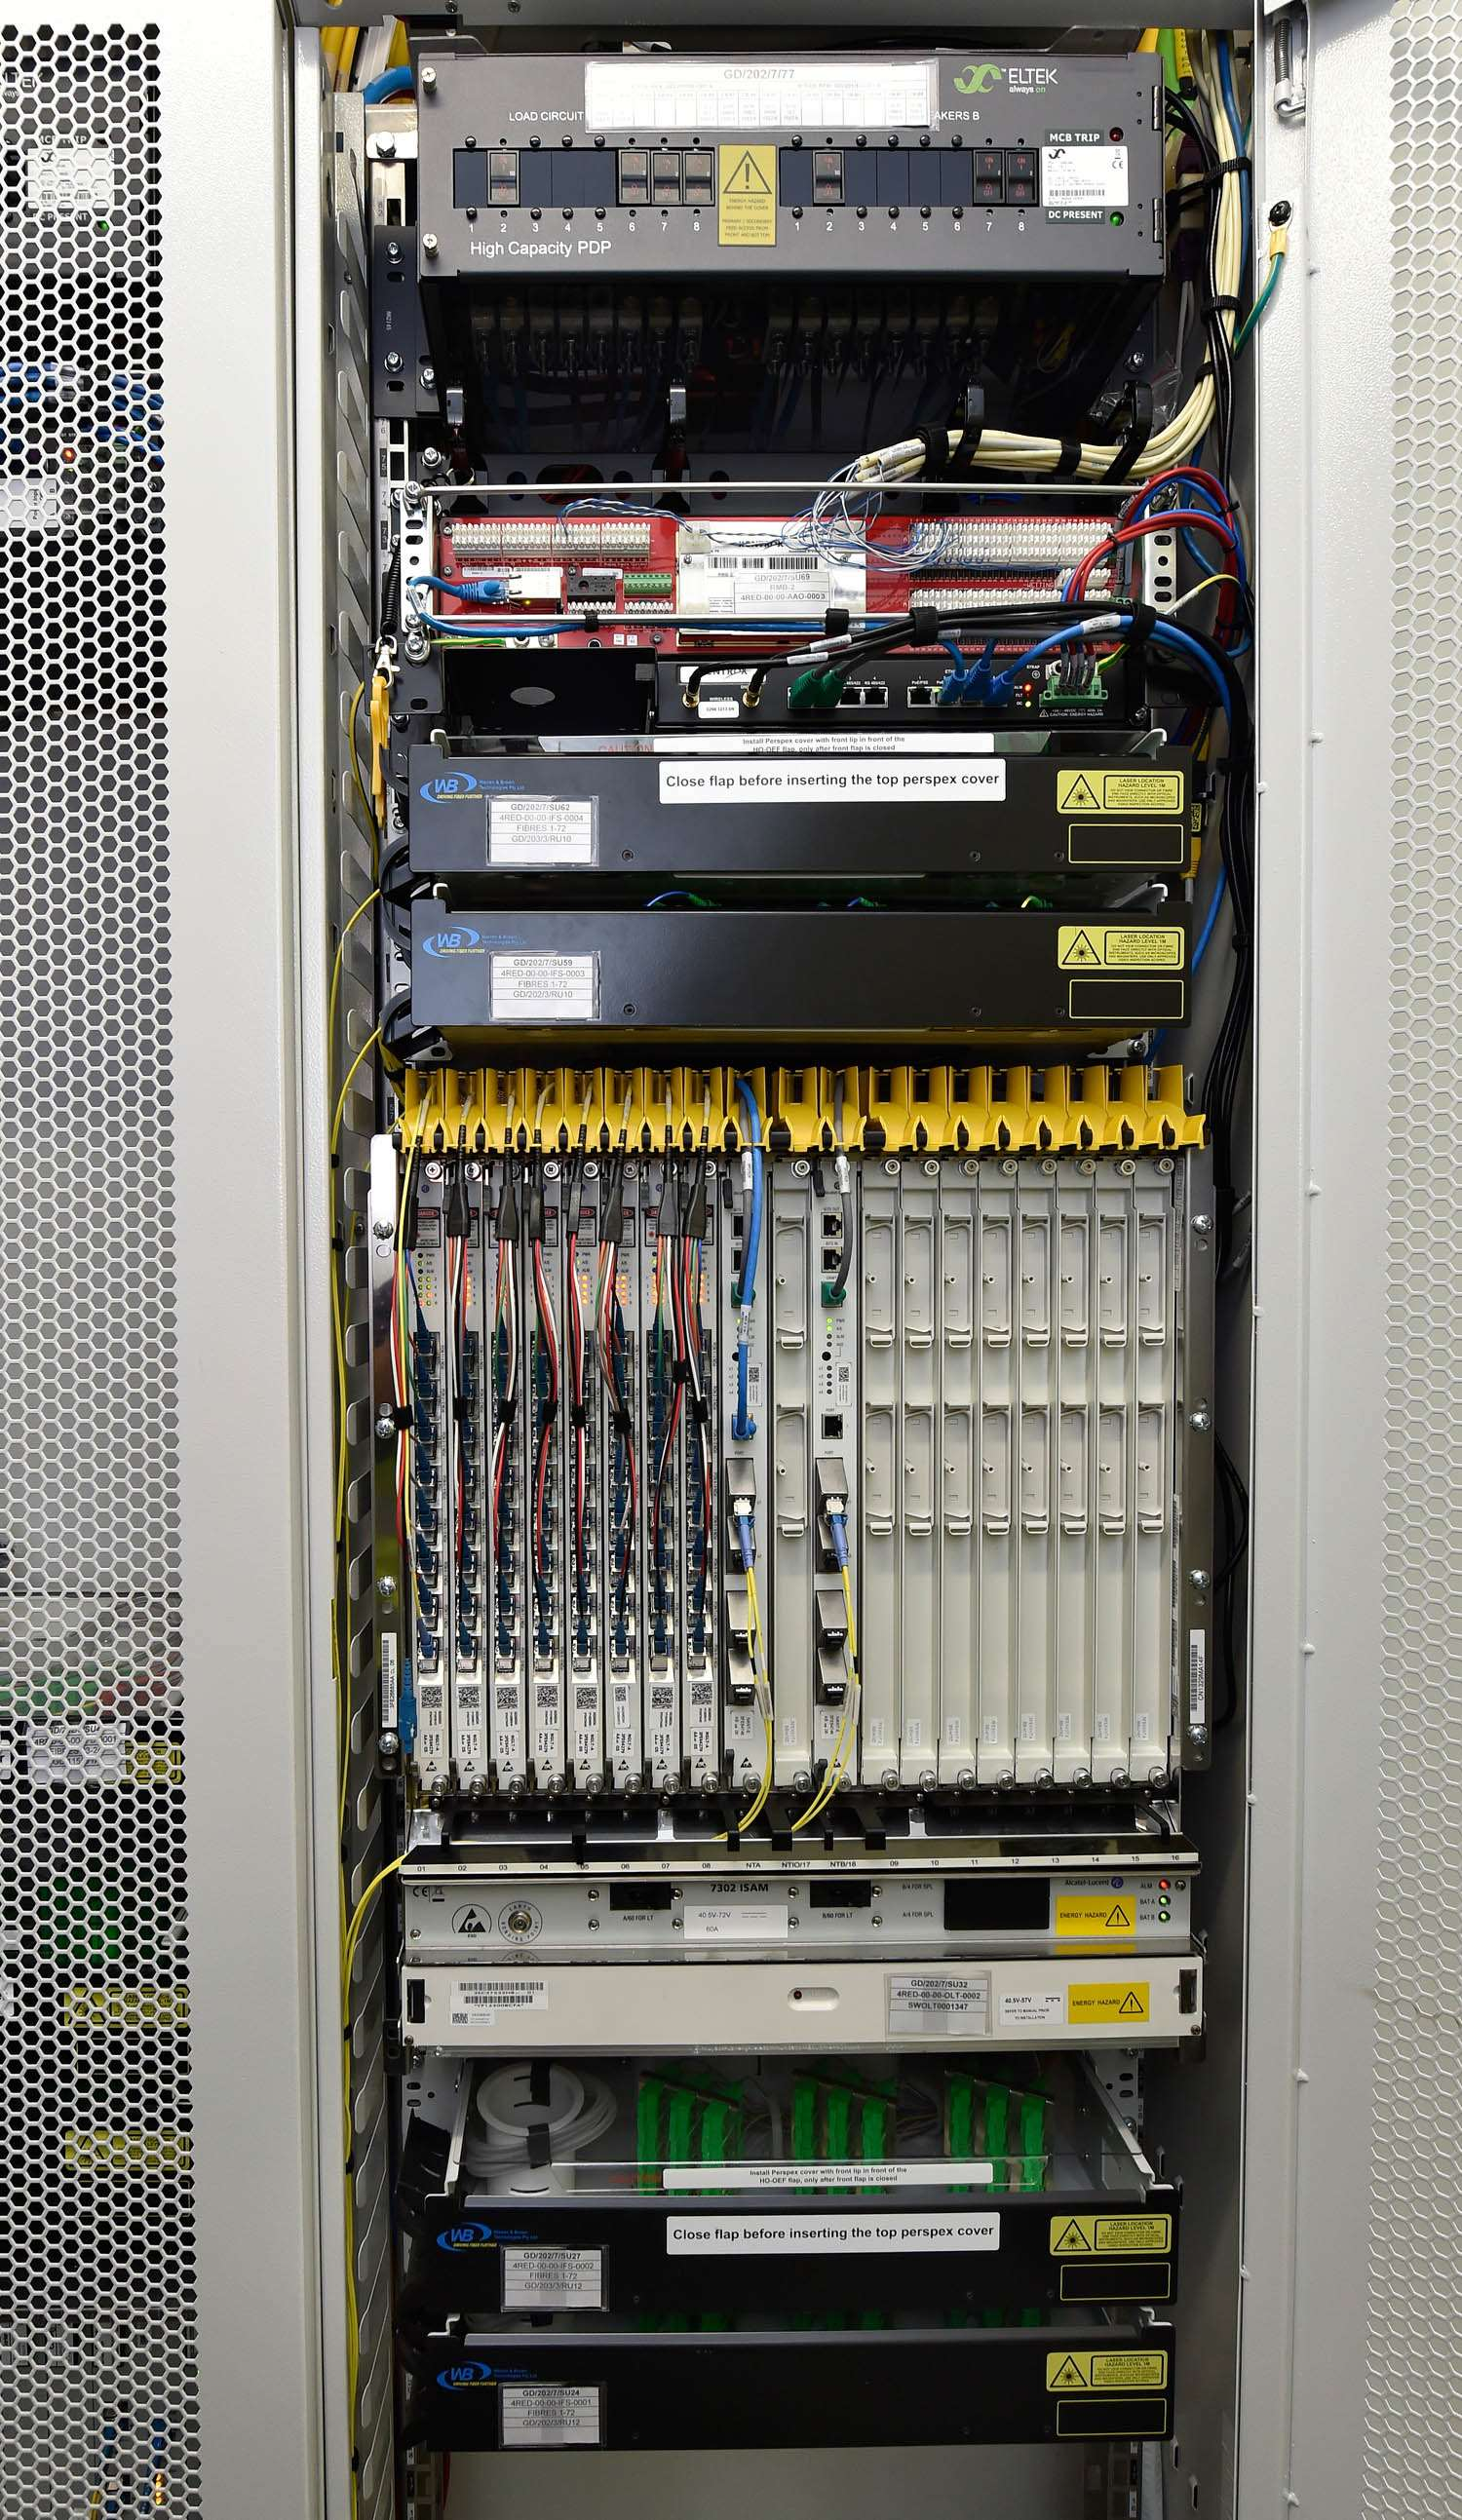 Photos A Look Inside An Nbn Exchange Telco Isp Itnews Wiring Your House For